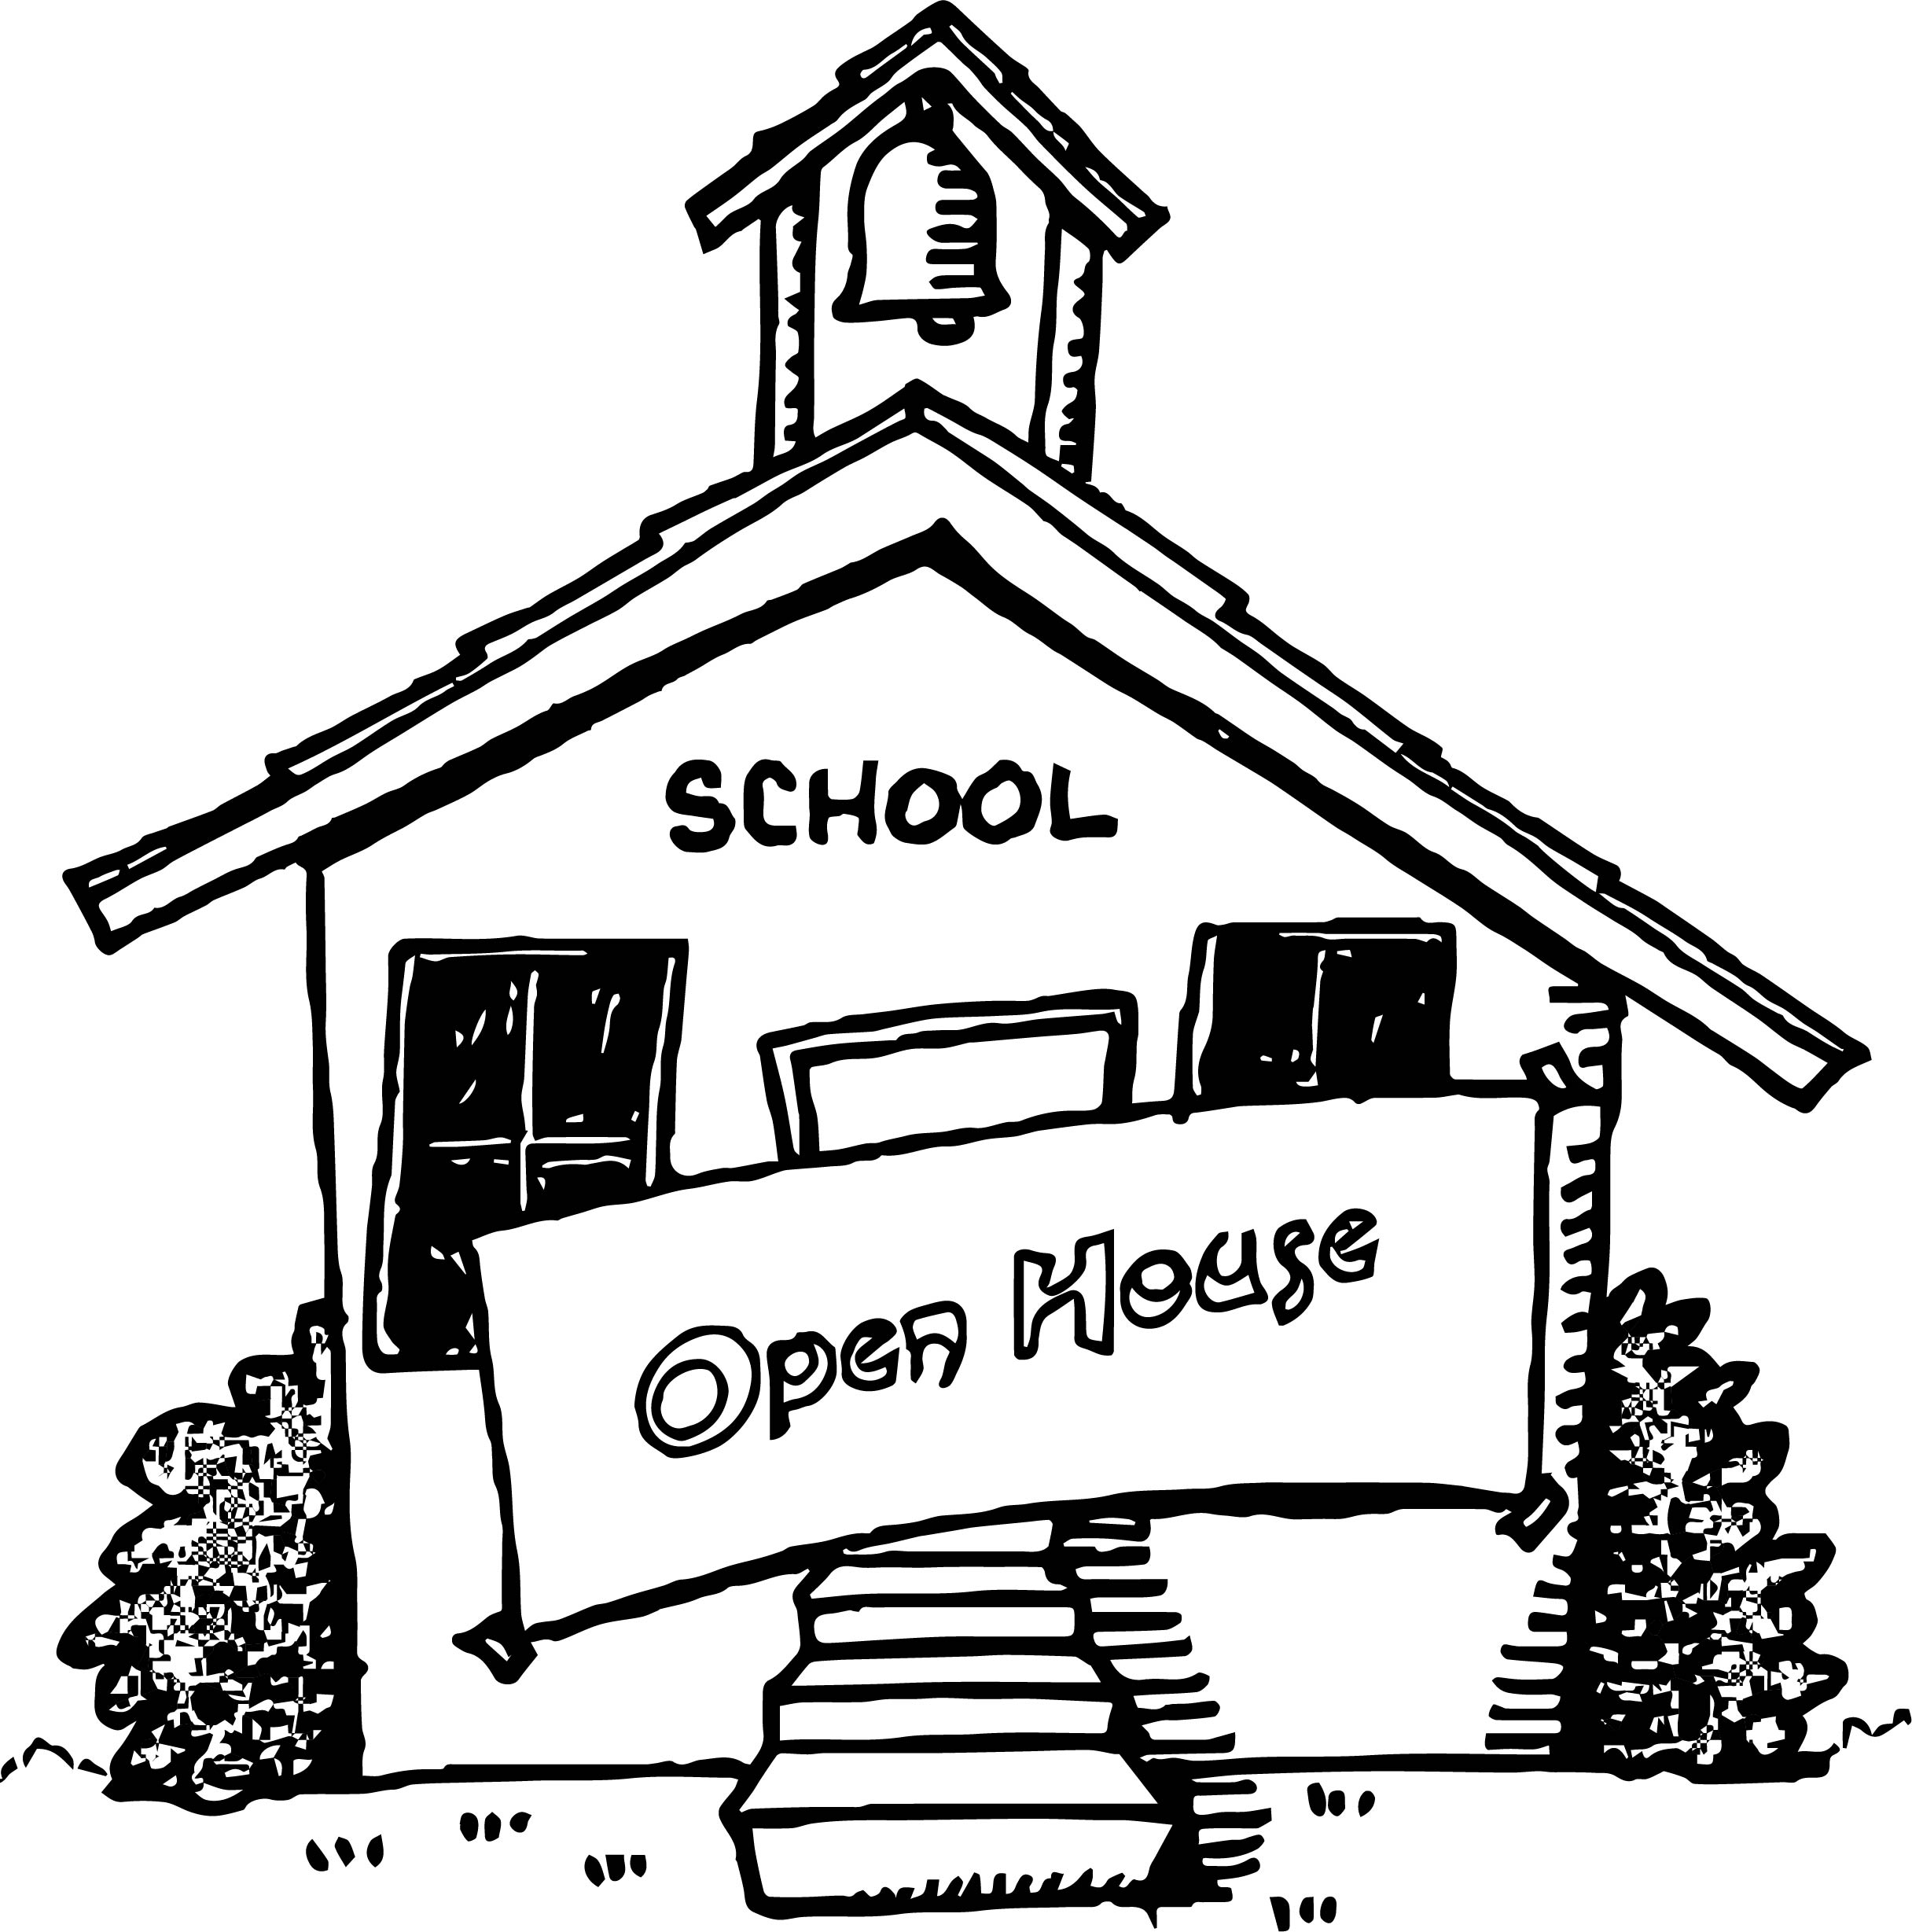 Open House Coloring Page